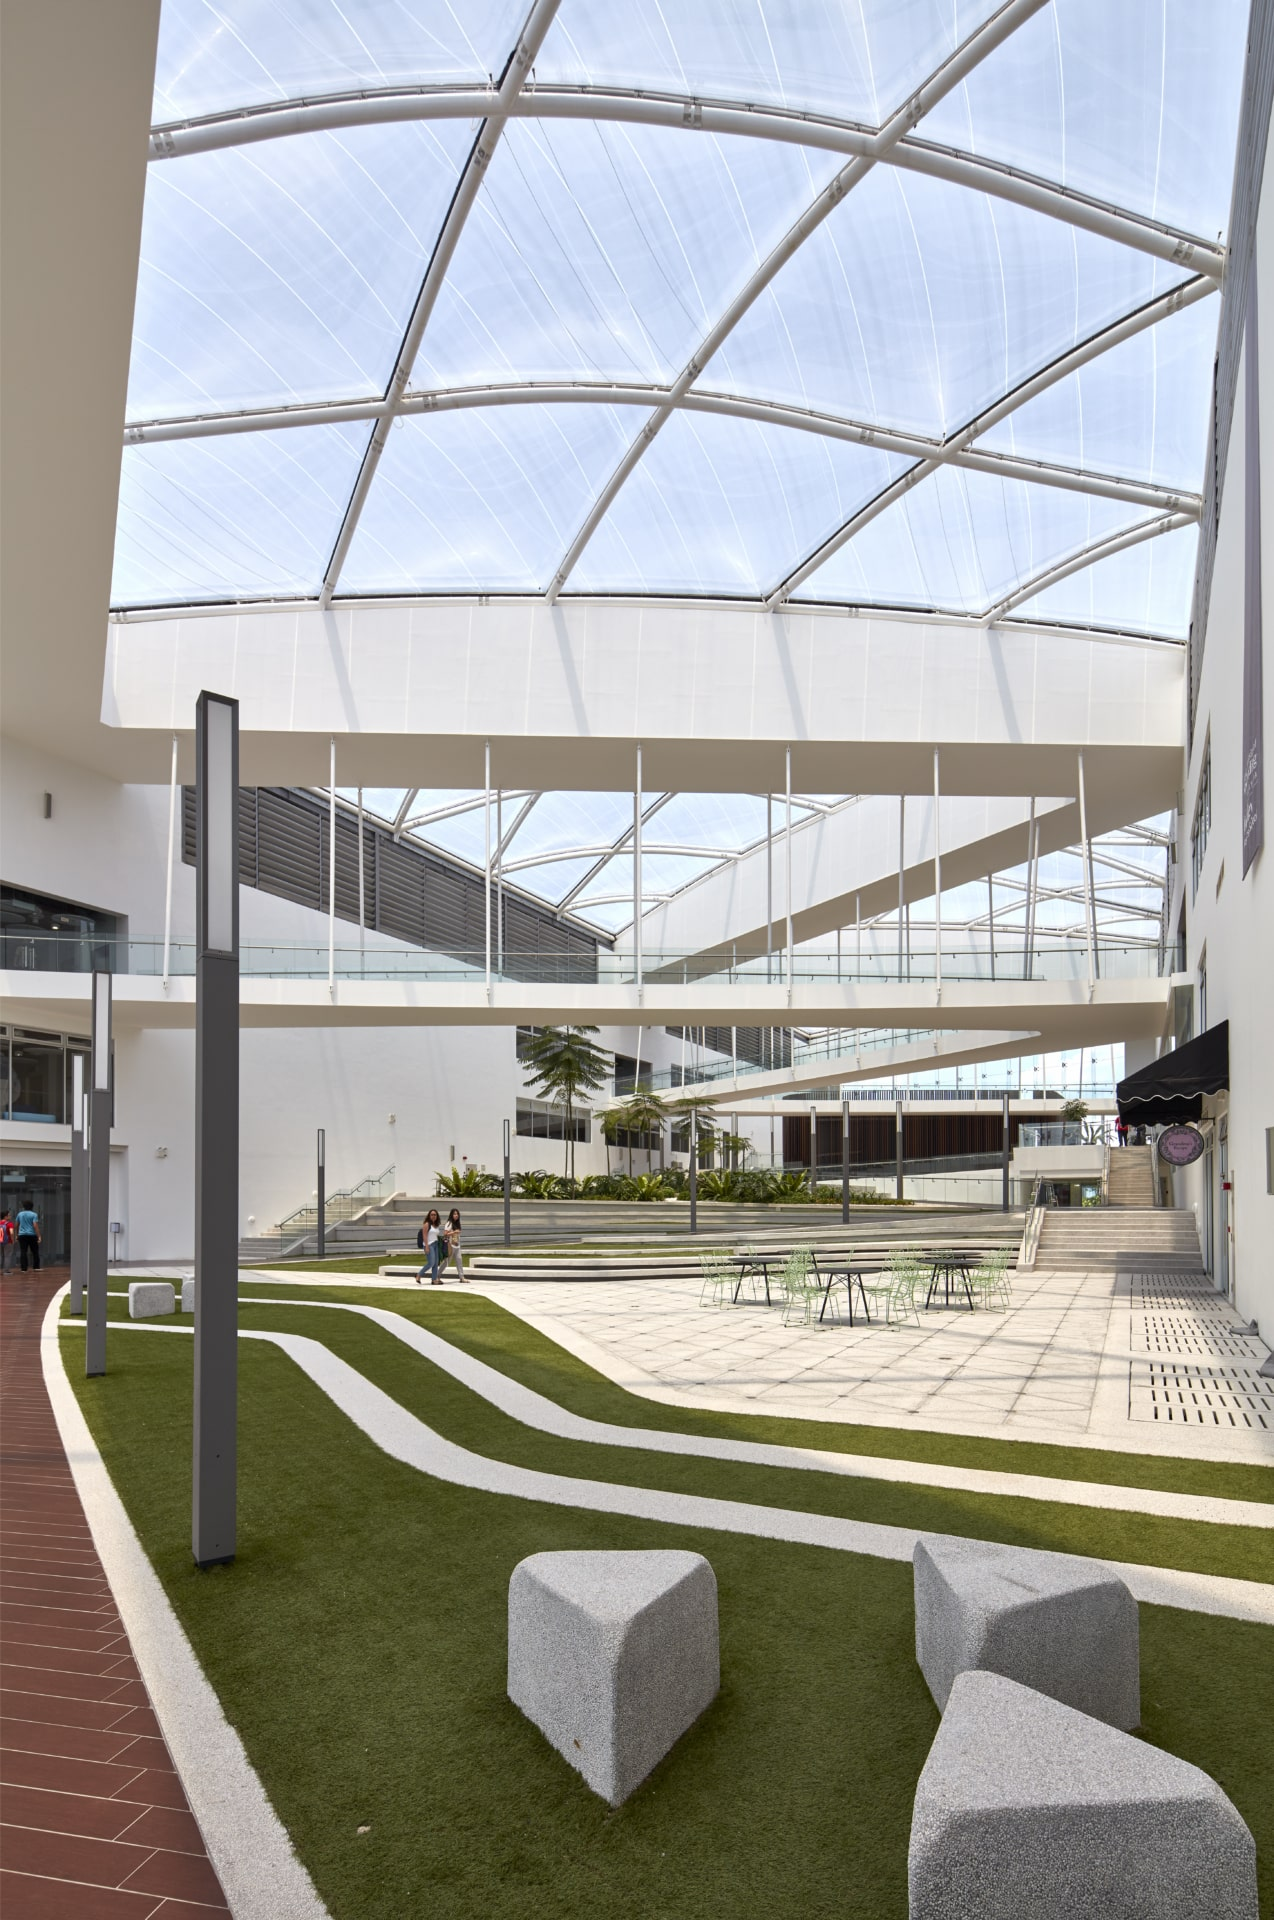 The two-layer Texlon® ETFE system is equipped with a partial dot hexagon print pattern that provides shading for an optimized climate control, while still retaining transparency.